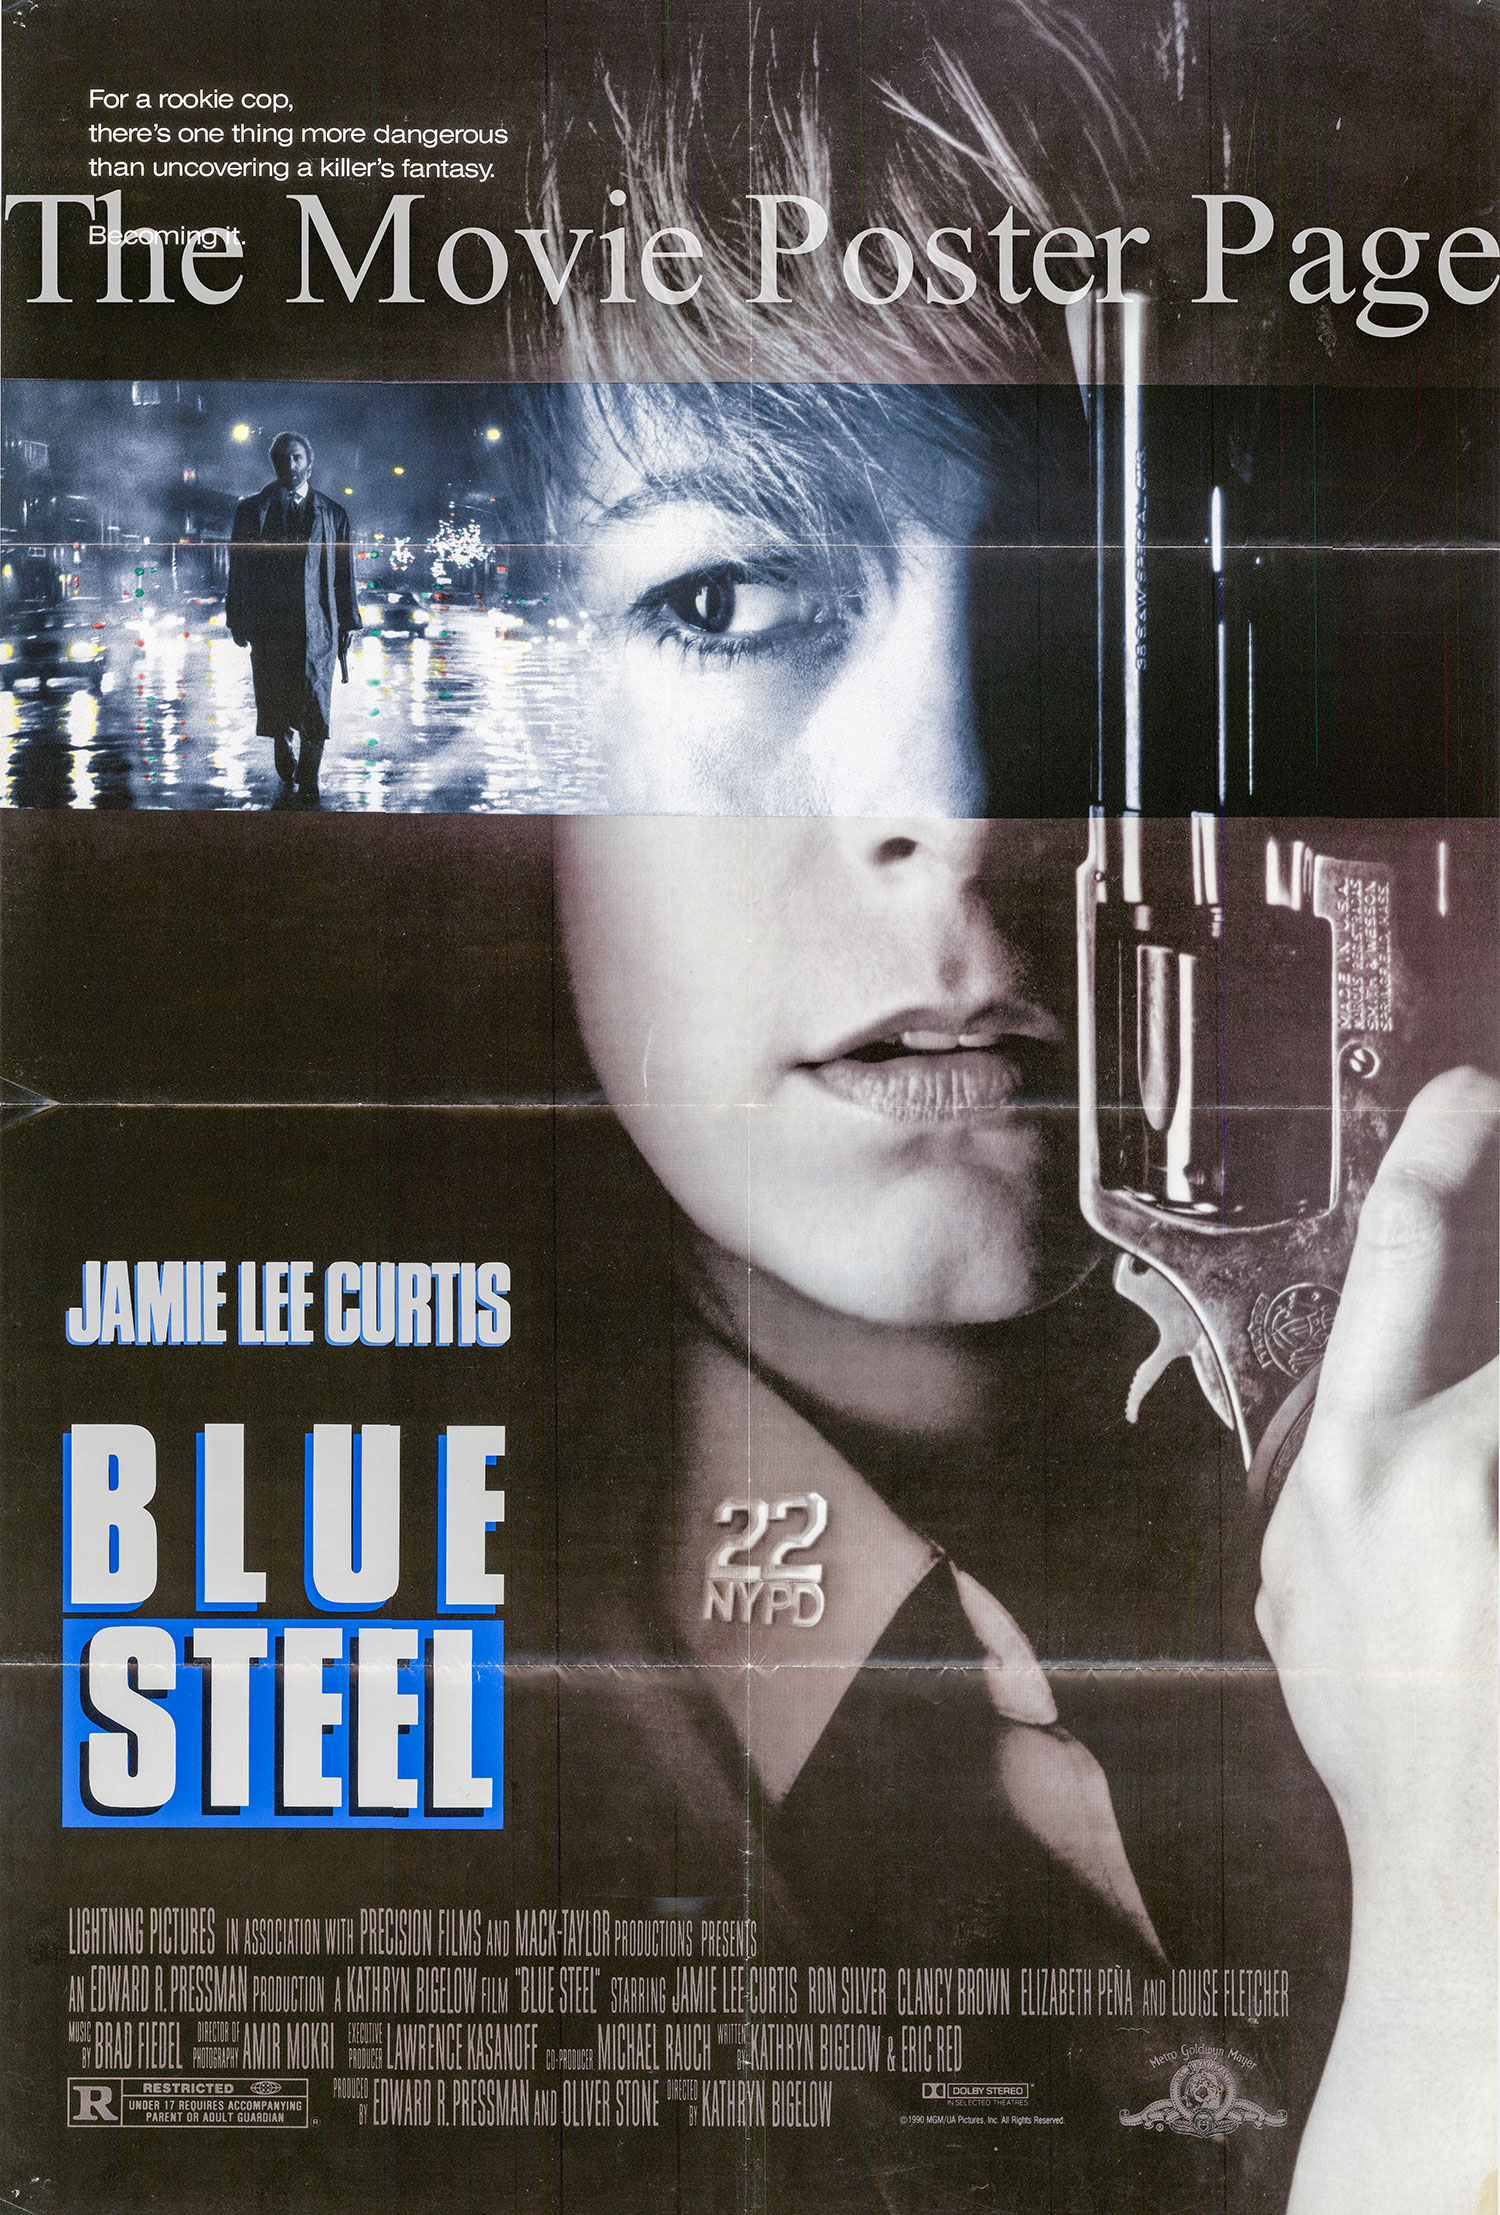 Pictured is a US promotional one-sheet poster for the 1990 Kathryn Bigelow film Blue Steel starring Jamie Lee Curtis as Megan Turner.